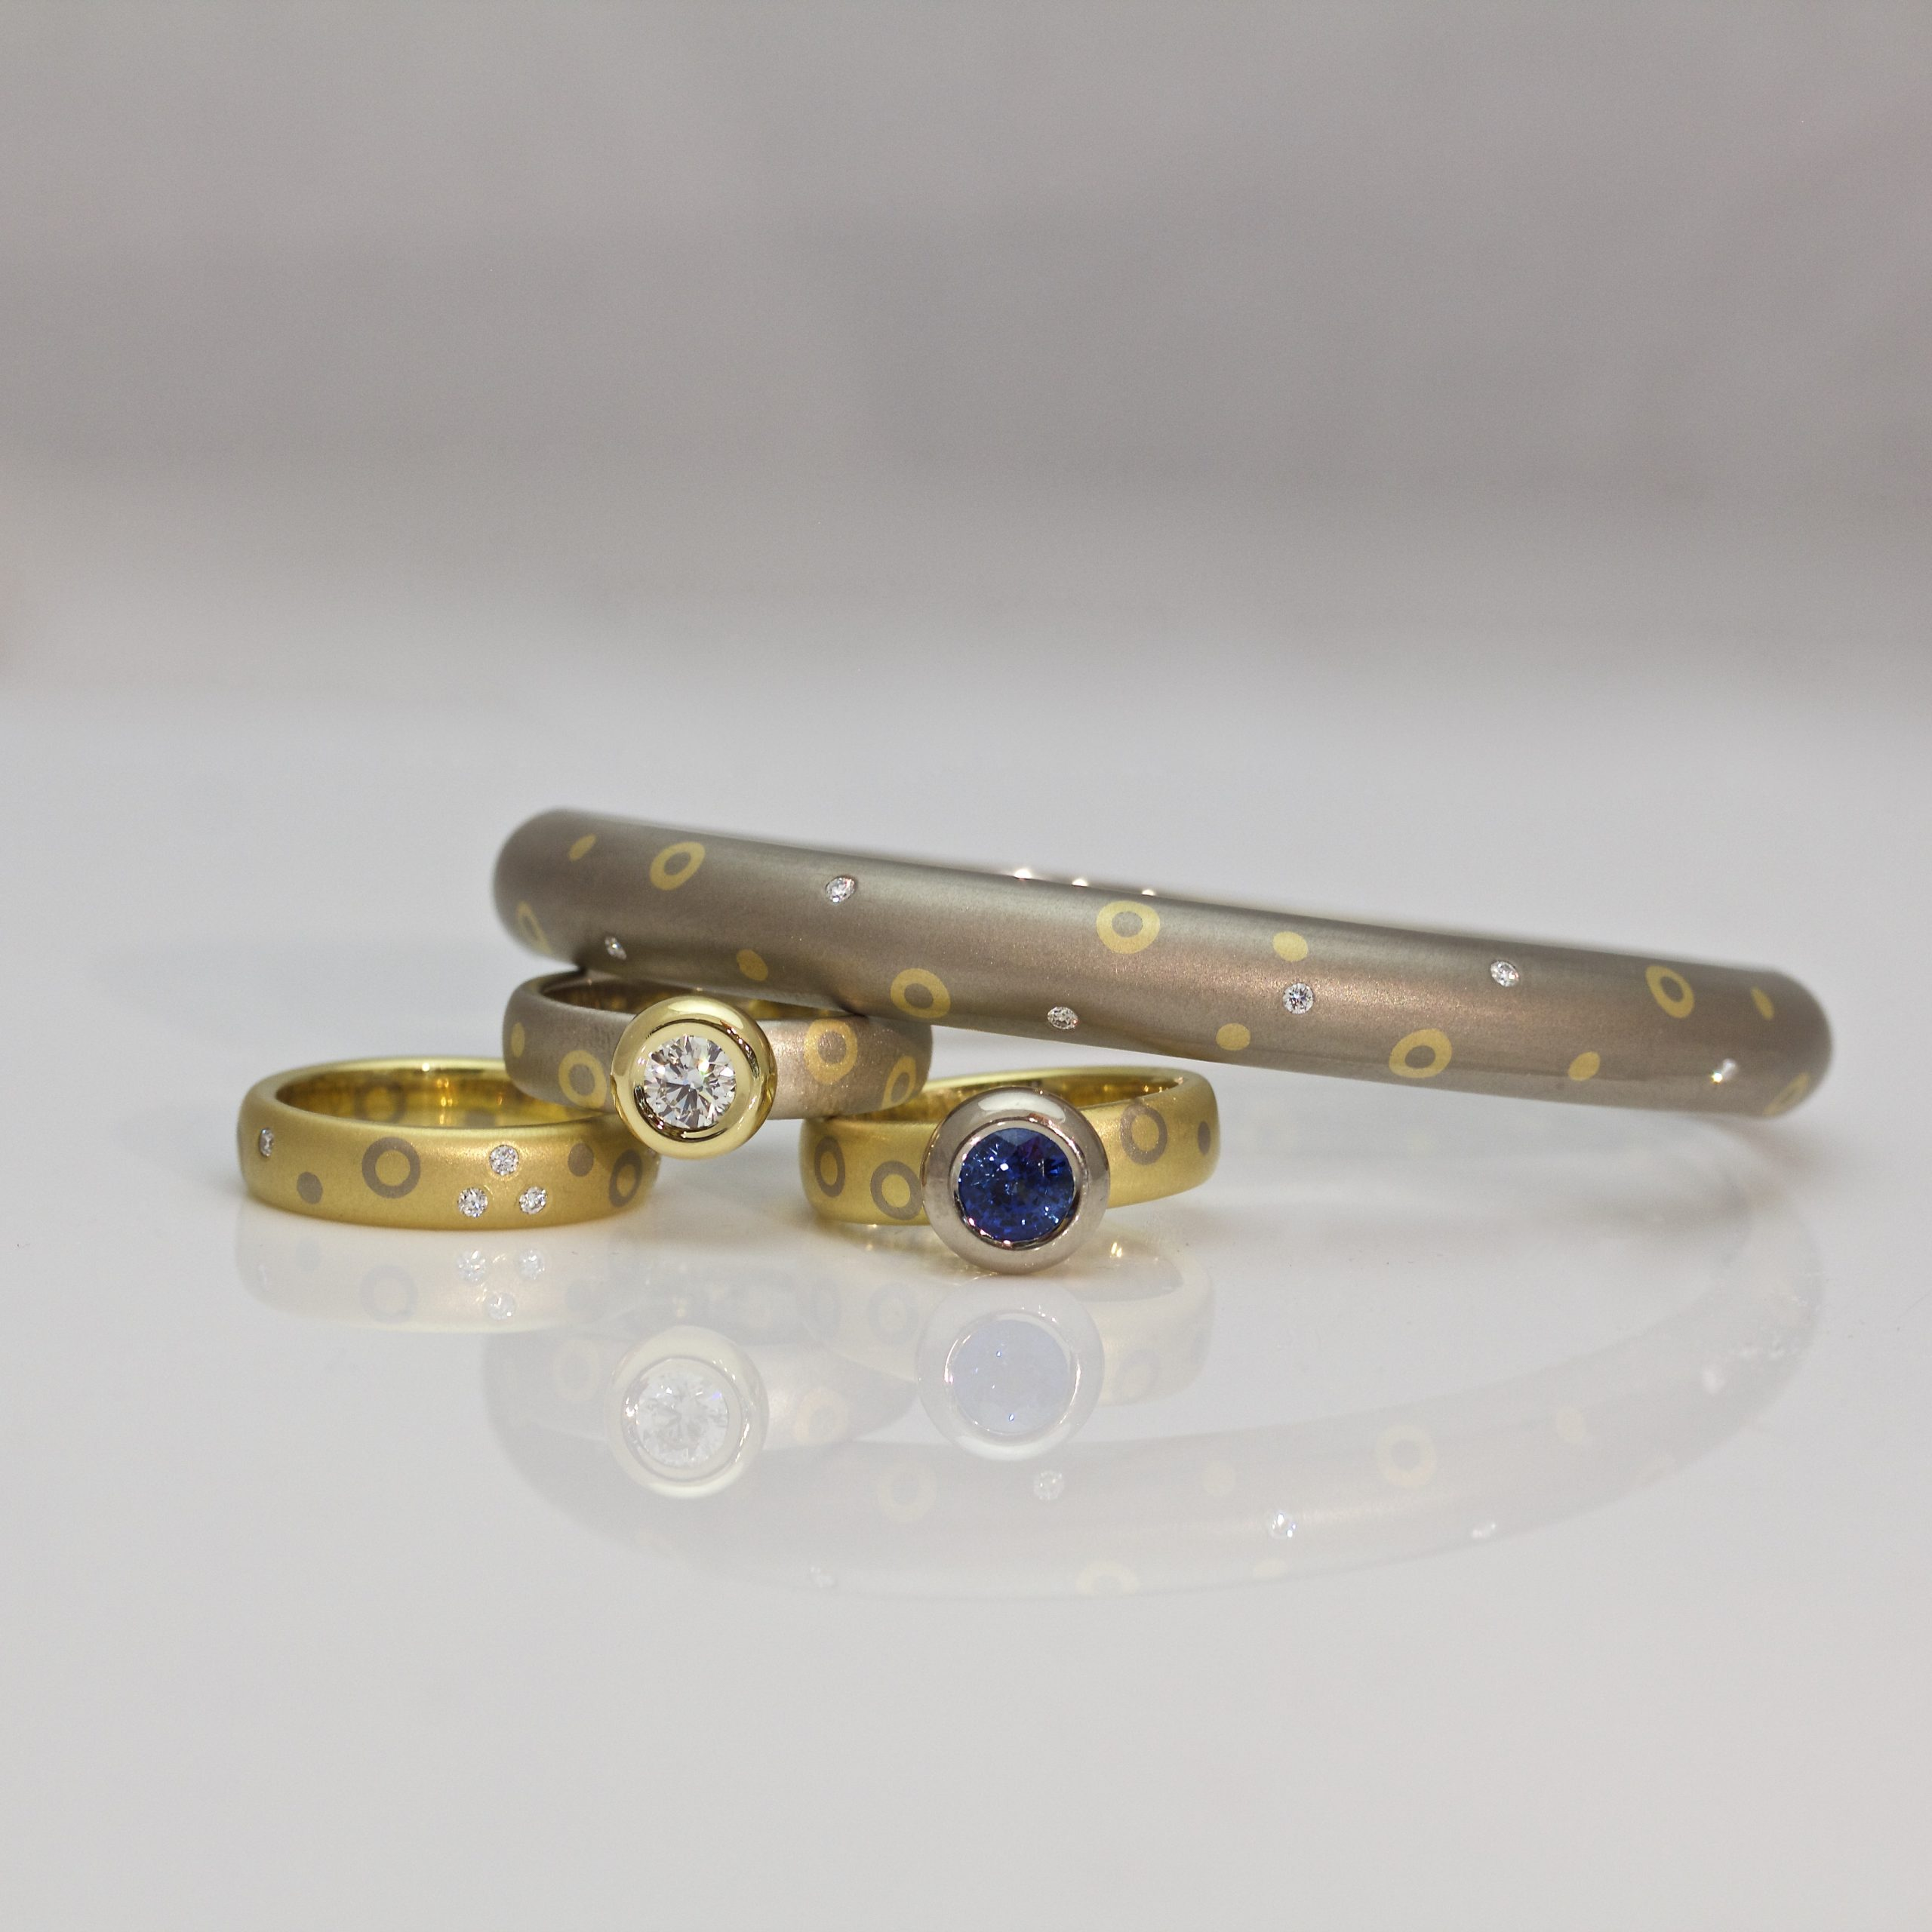 18ct gold hinged bangle with diamonds, dots & circles